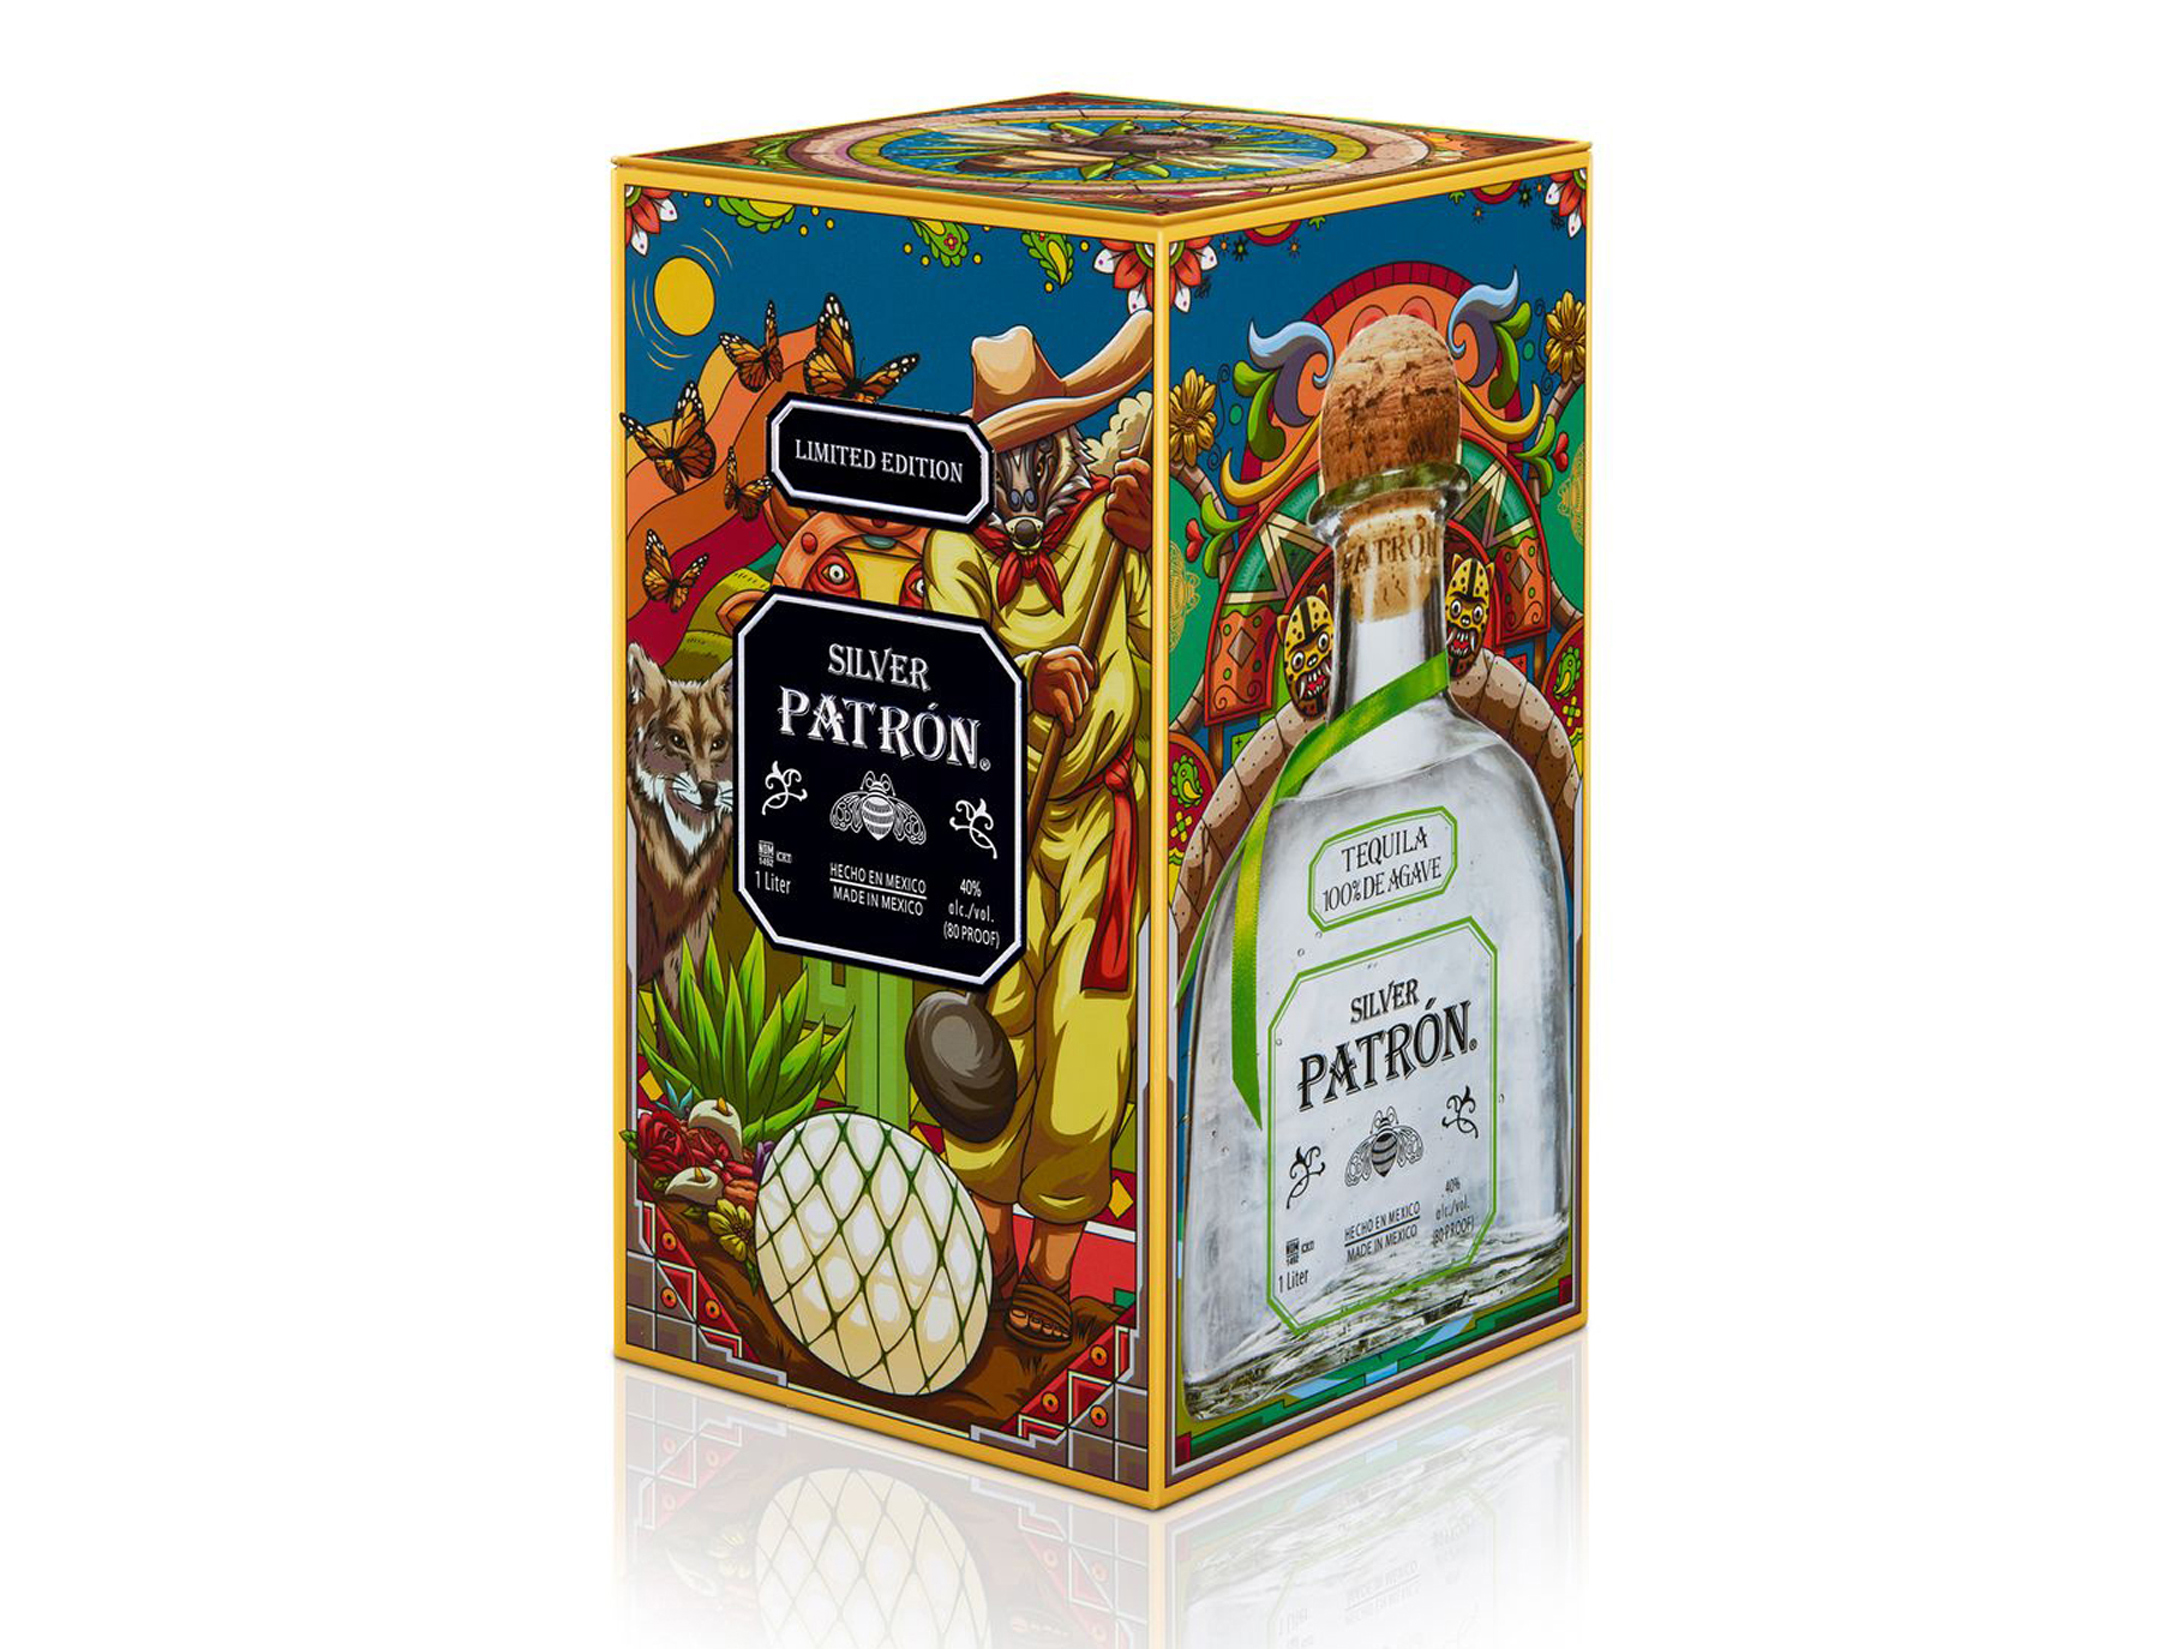 Patron Silver Tequila Heritage Tin